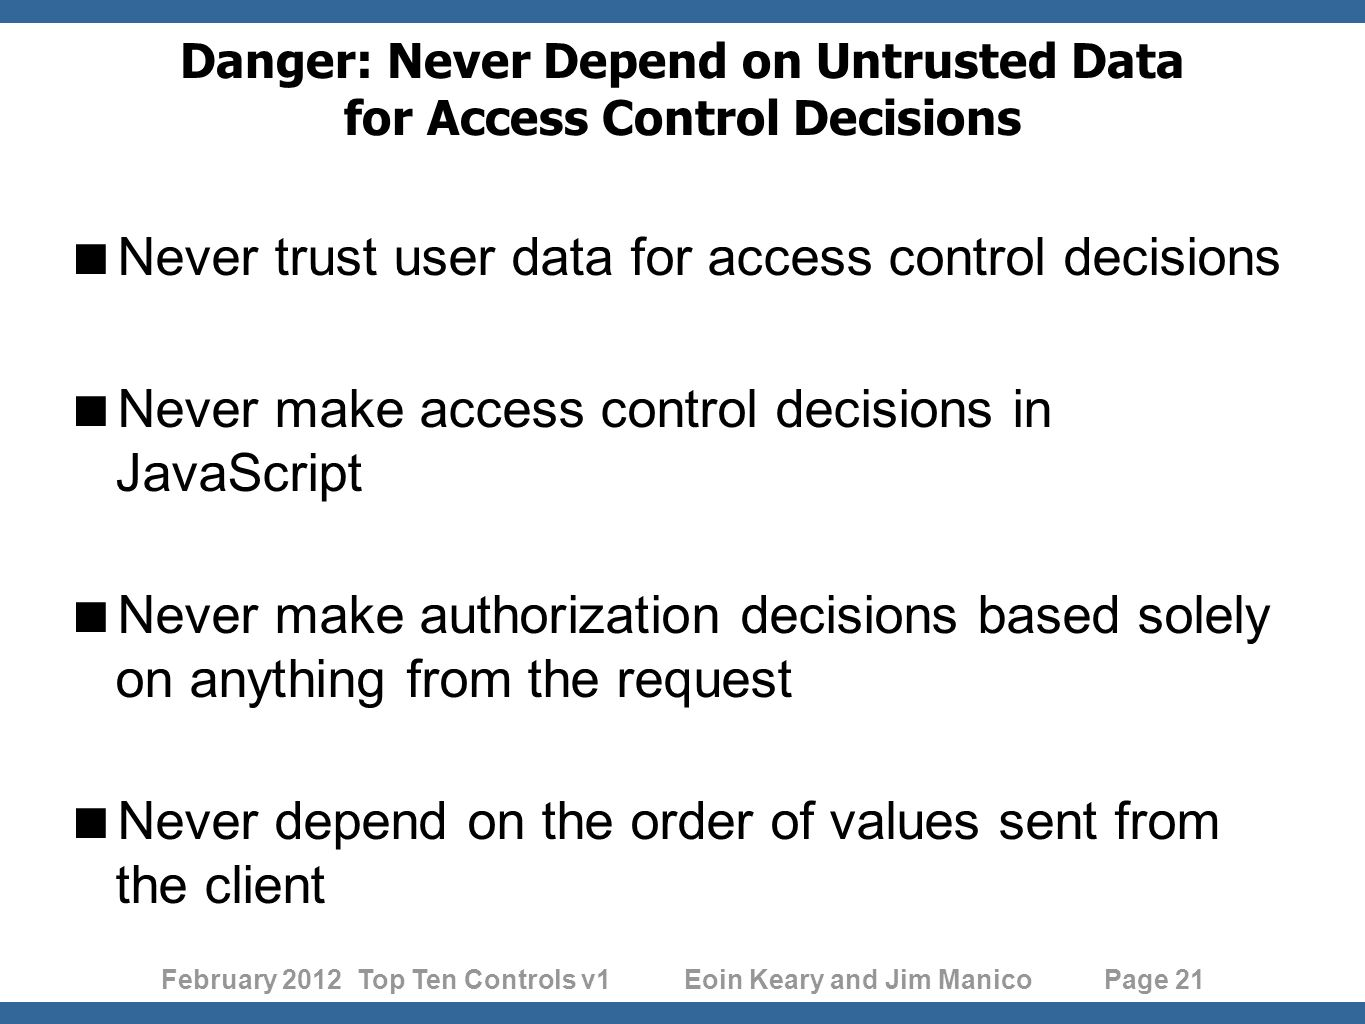 February 2012 Top Ten Controls v1 Eoin Keary and Jim Manico Page 21 Danger: Never Depend on Untrusted Data for Access Control Decisions Never trust user data for access control decisions Never make access control decisions in JavaScript Never make authorization decisions based solely on anything from the request Never depend on the order of values sent from the client